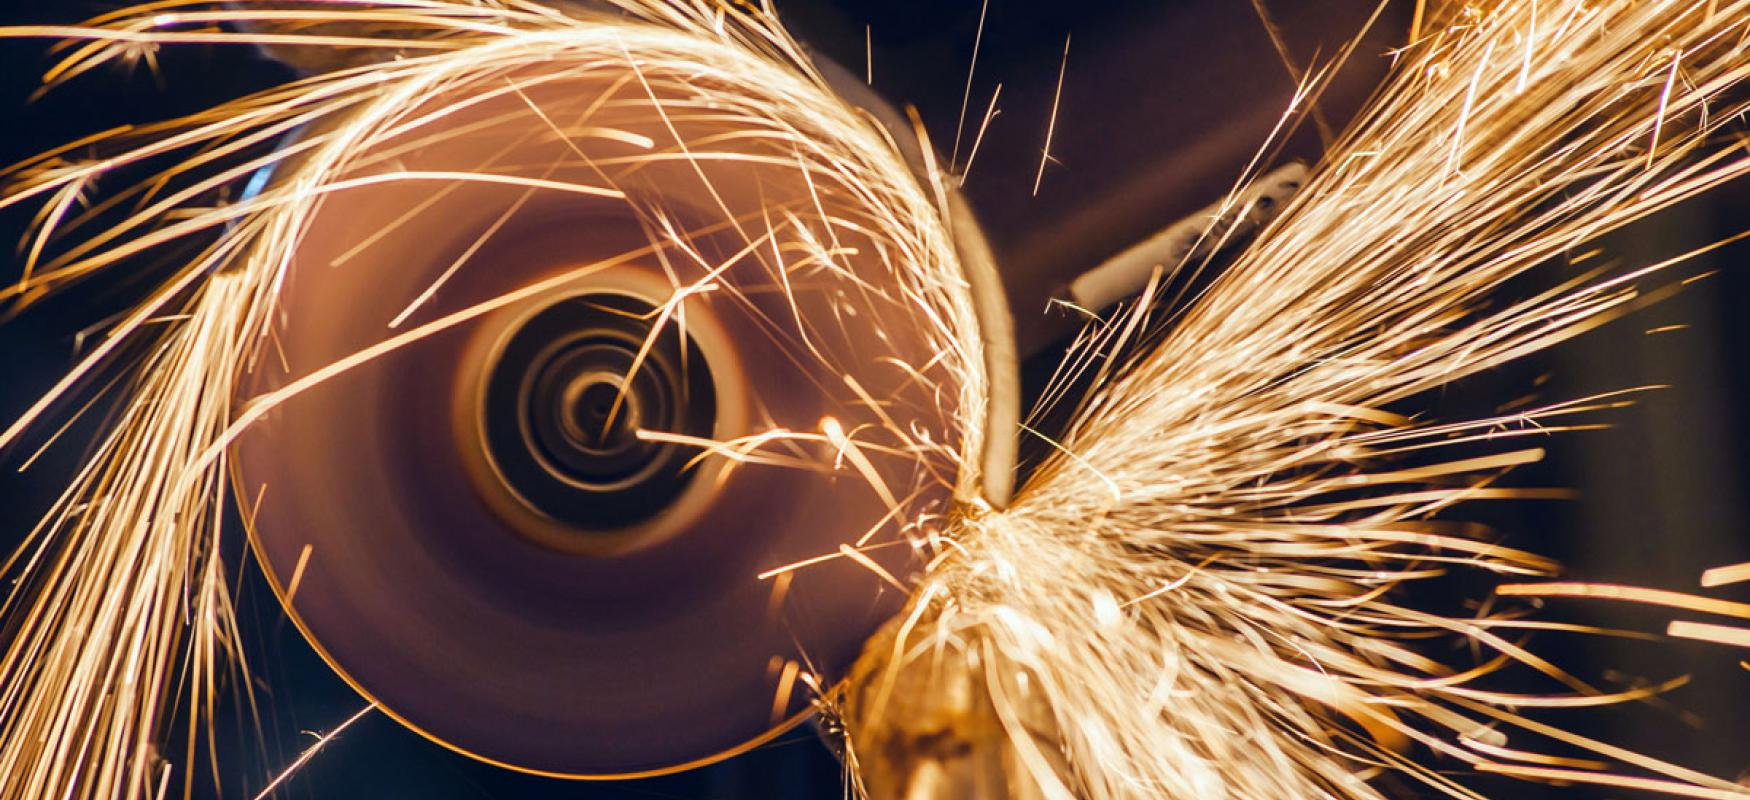 Angle grinder with sparks flying